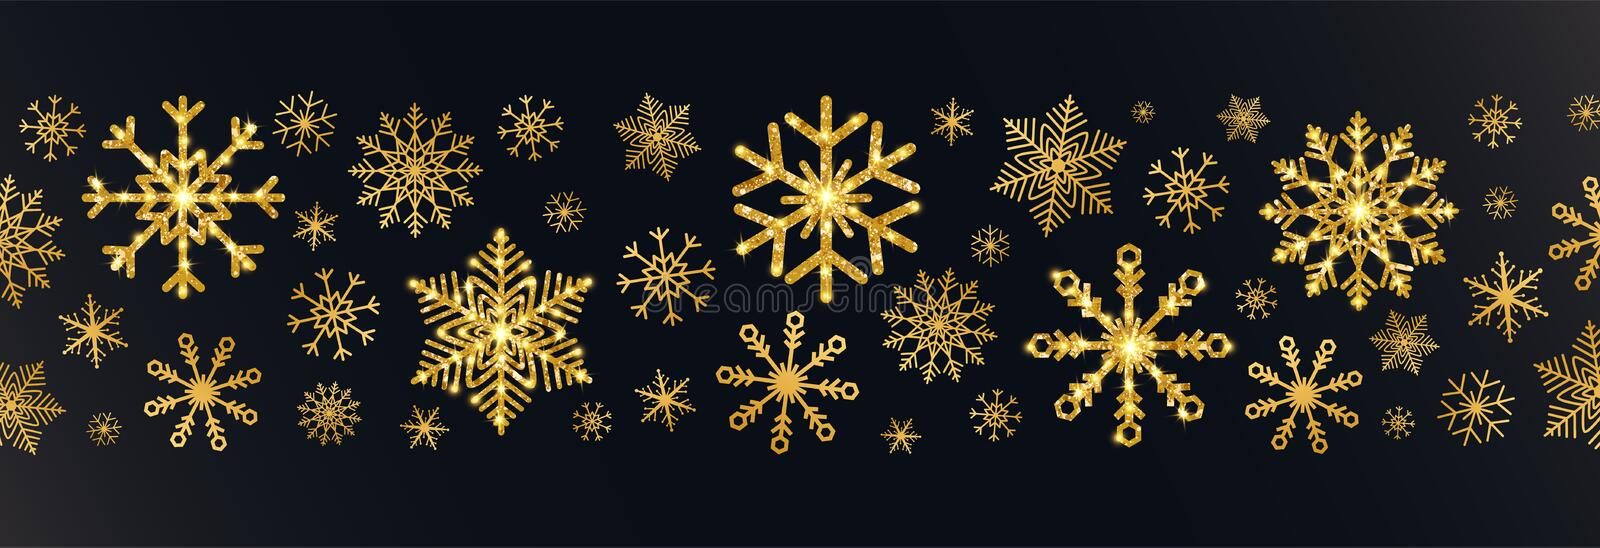 Golden snowflakes border on black background. Merry Christmas and Happy New Year greeting card with glitter gold stock photography